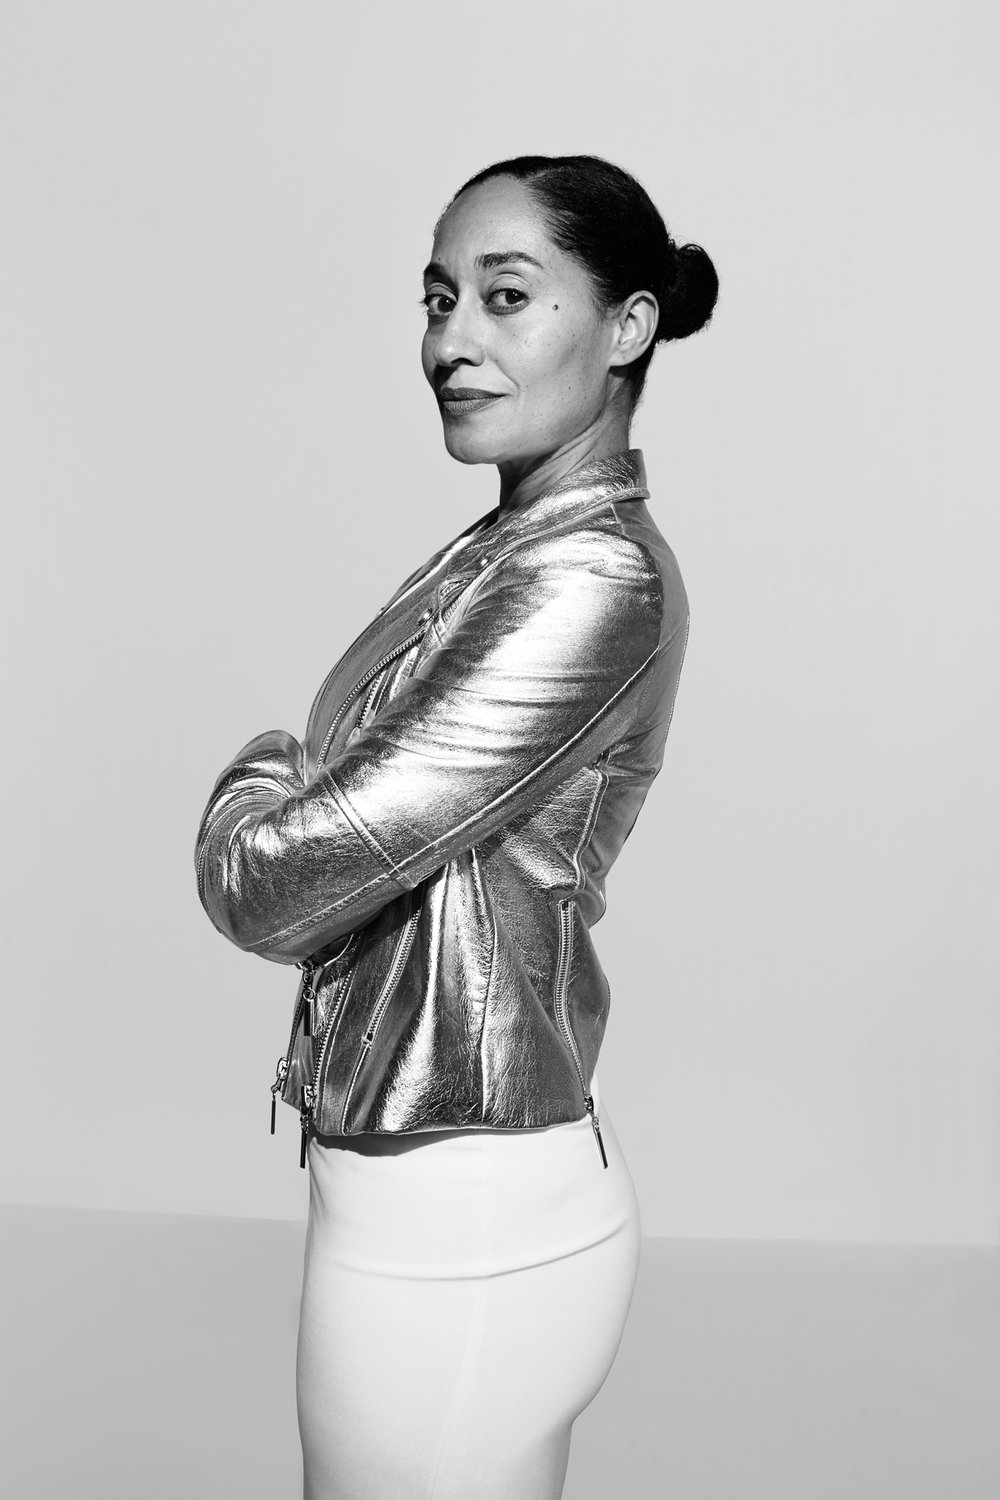 KATE OWEN | TRACEE ELLIS ROSS